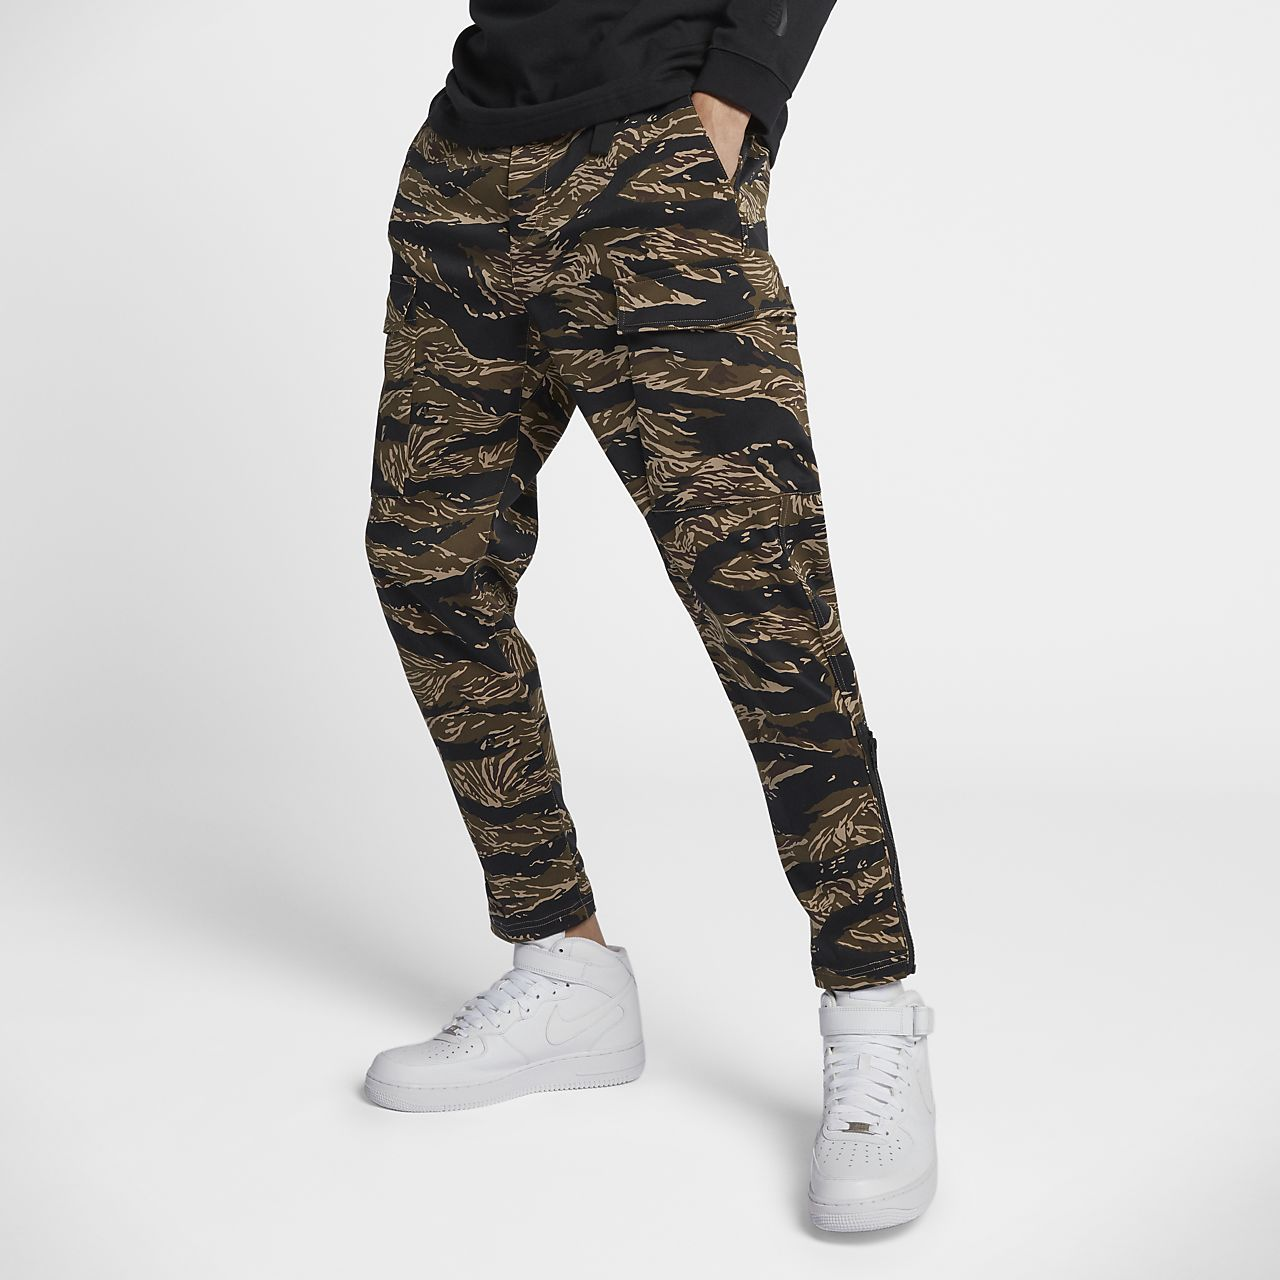 NikeLab Essentials Tiger Camo Men's Trousers